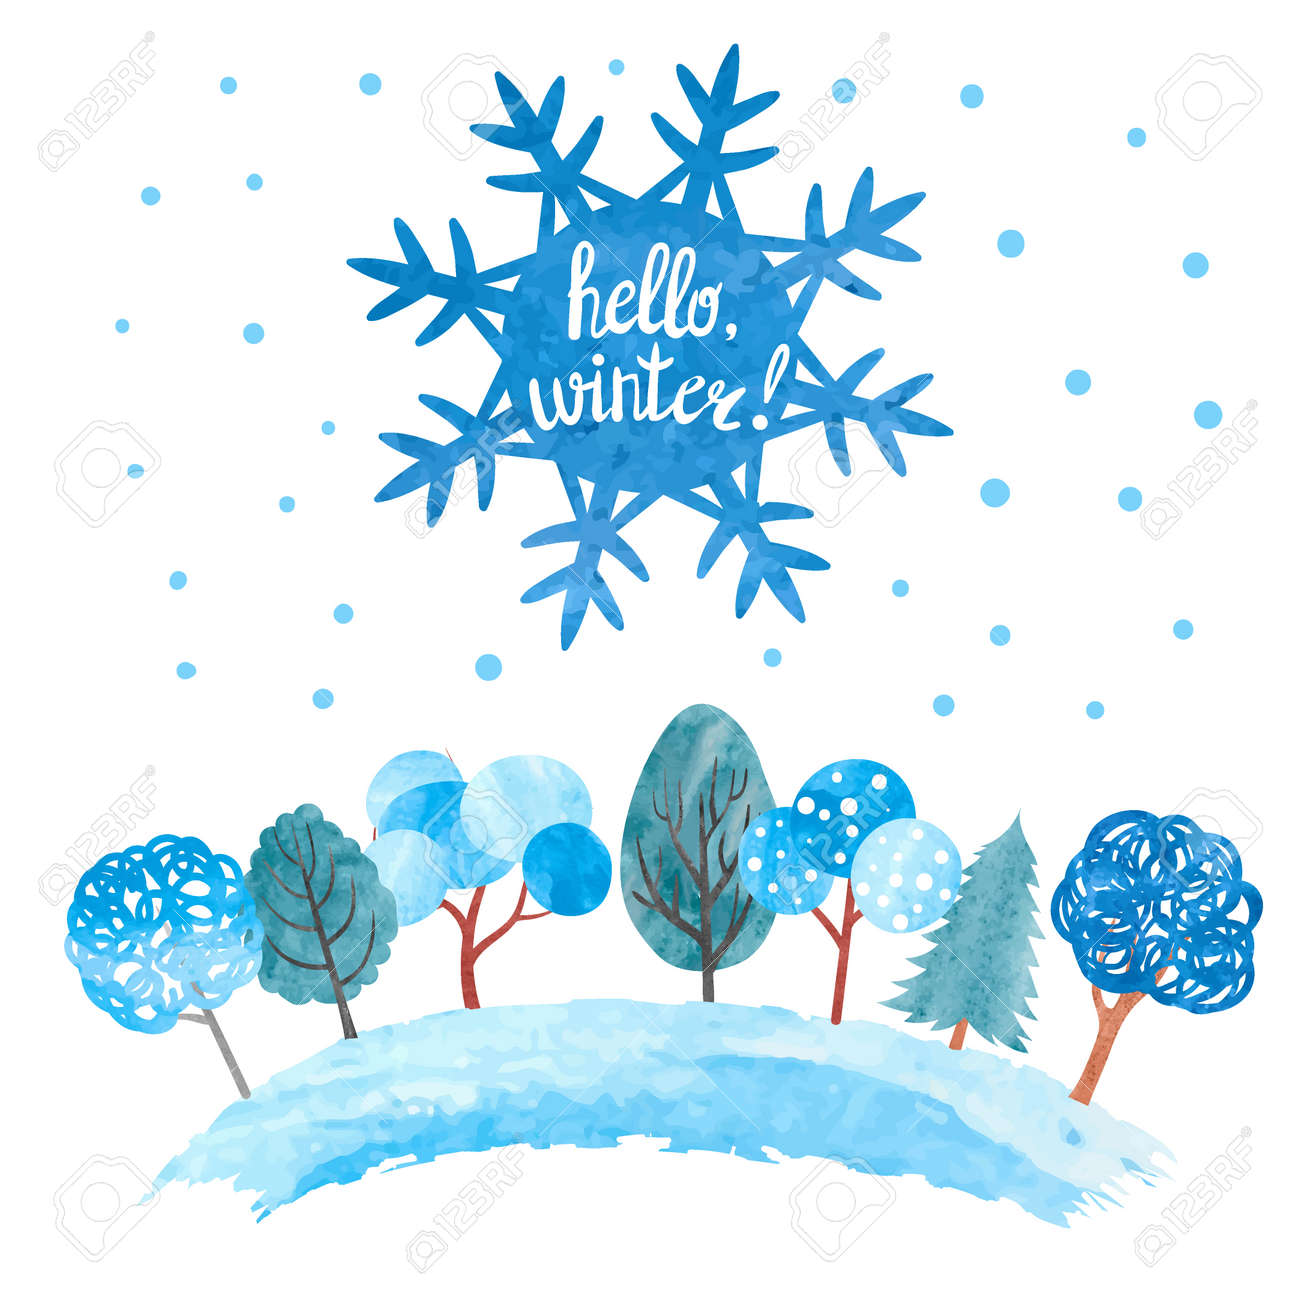 hello winter vector illustration watercolor snowflake and trees rh 123rf com winter vector pattern winter vector pattern